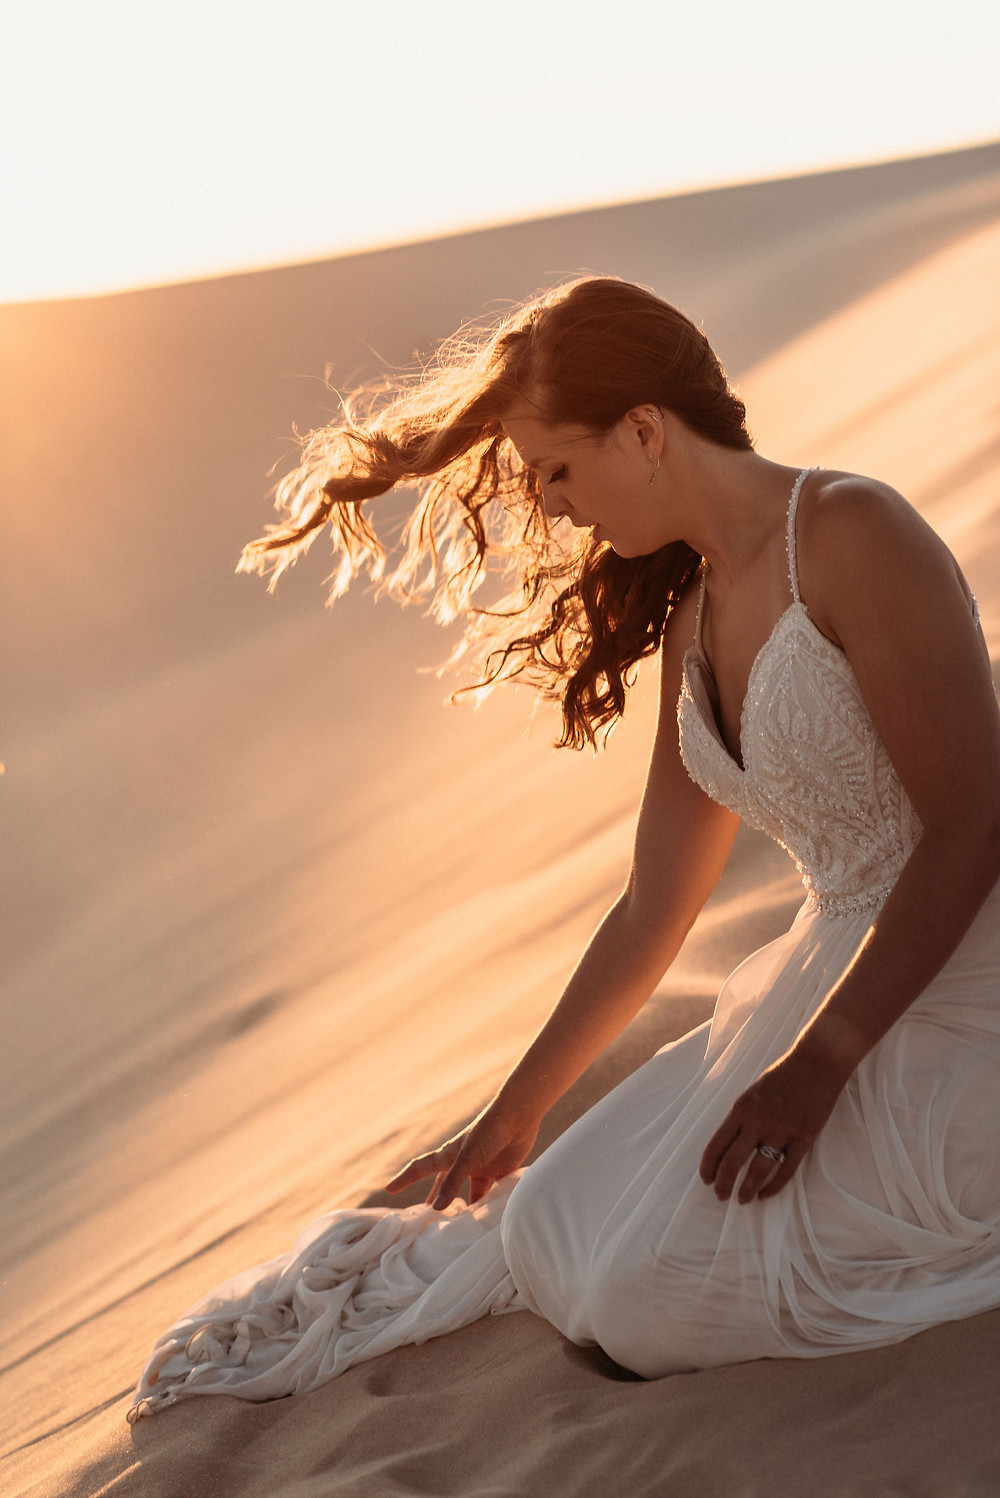 bride sits in sand, fussing with her wedding dress. the sun is setting behind her and the golden light illuminates her hair blowing in the wind,